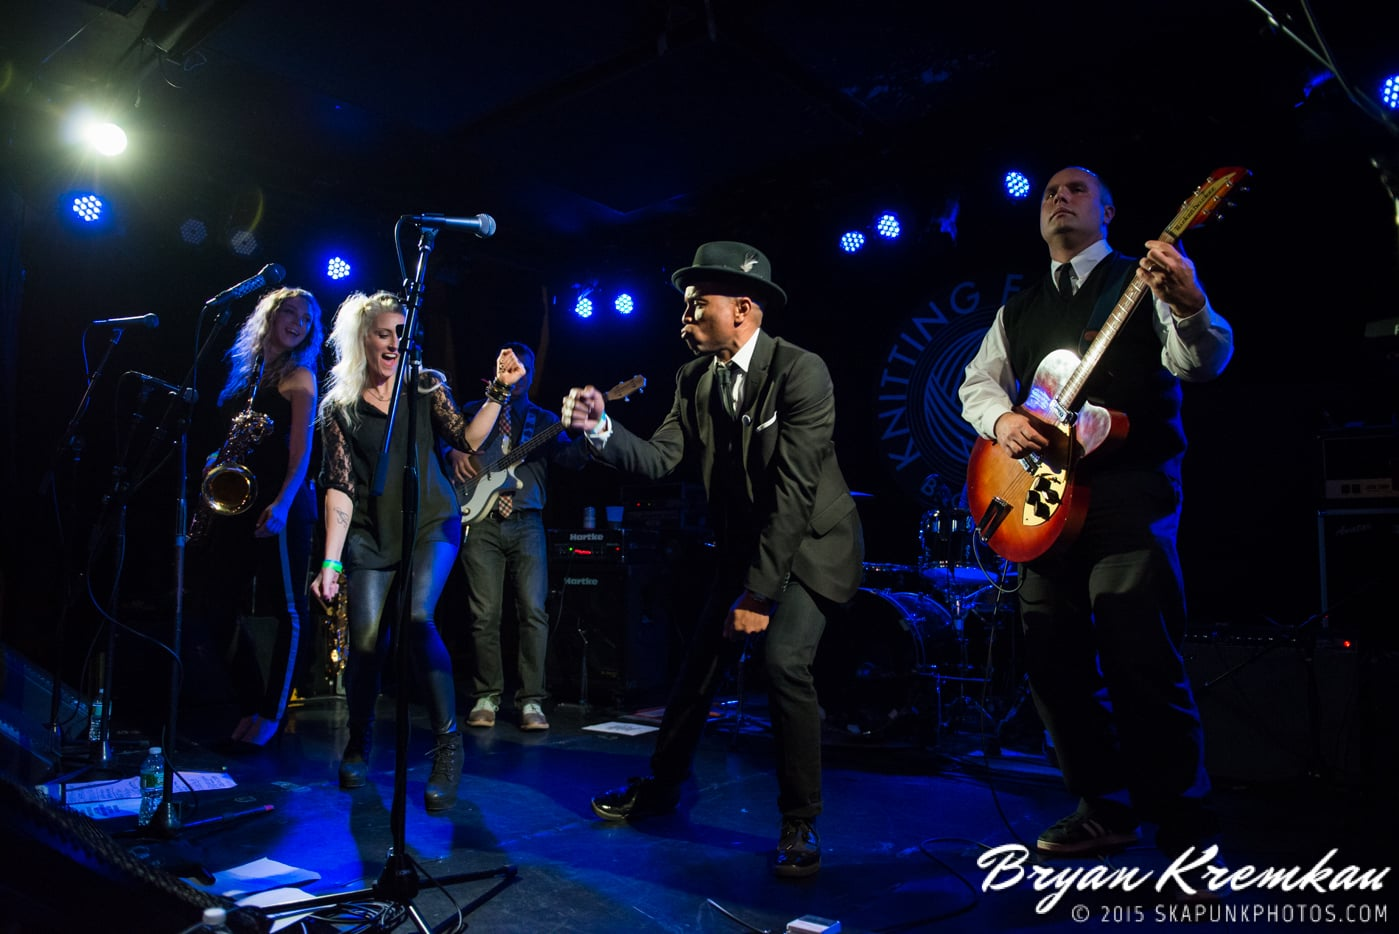 Rude Boy George @ Knitting Factory, Brooklyn, NY - 11.13.15 (20)